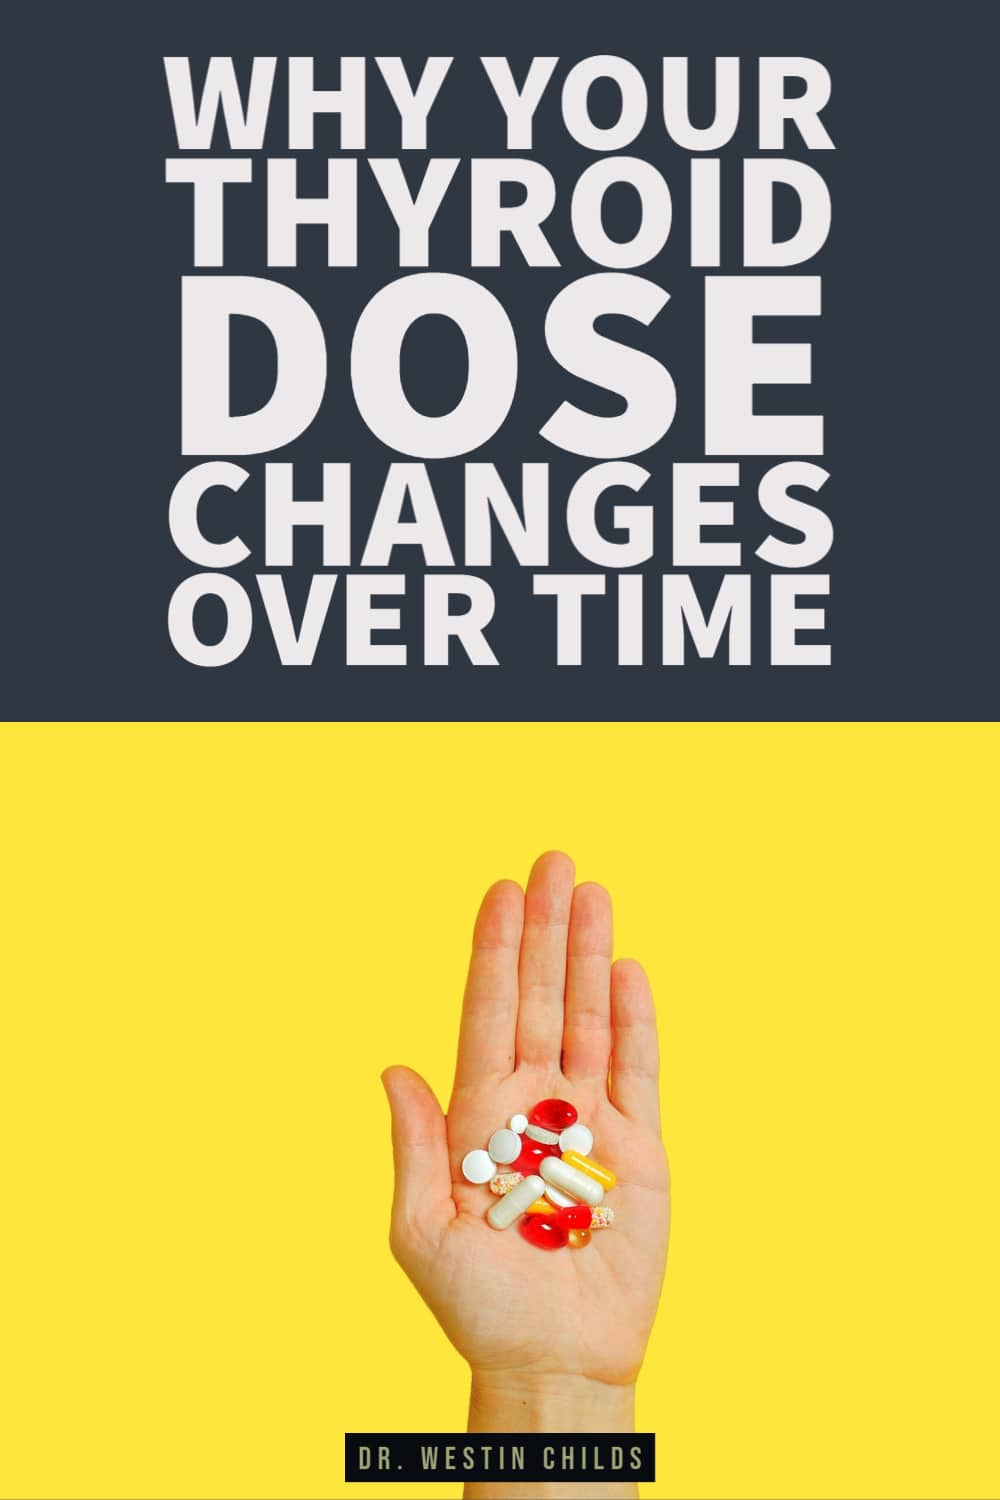 Why Your Thyroid Dose Changes Over Time